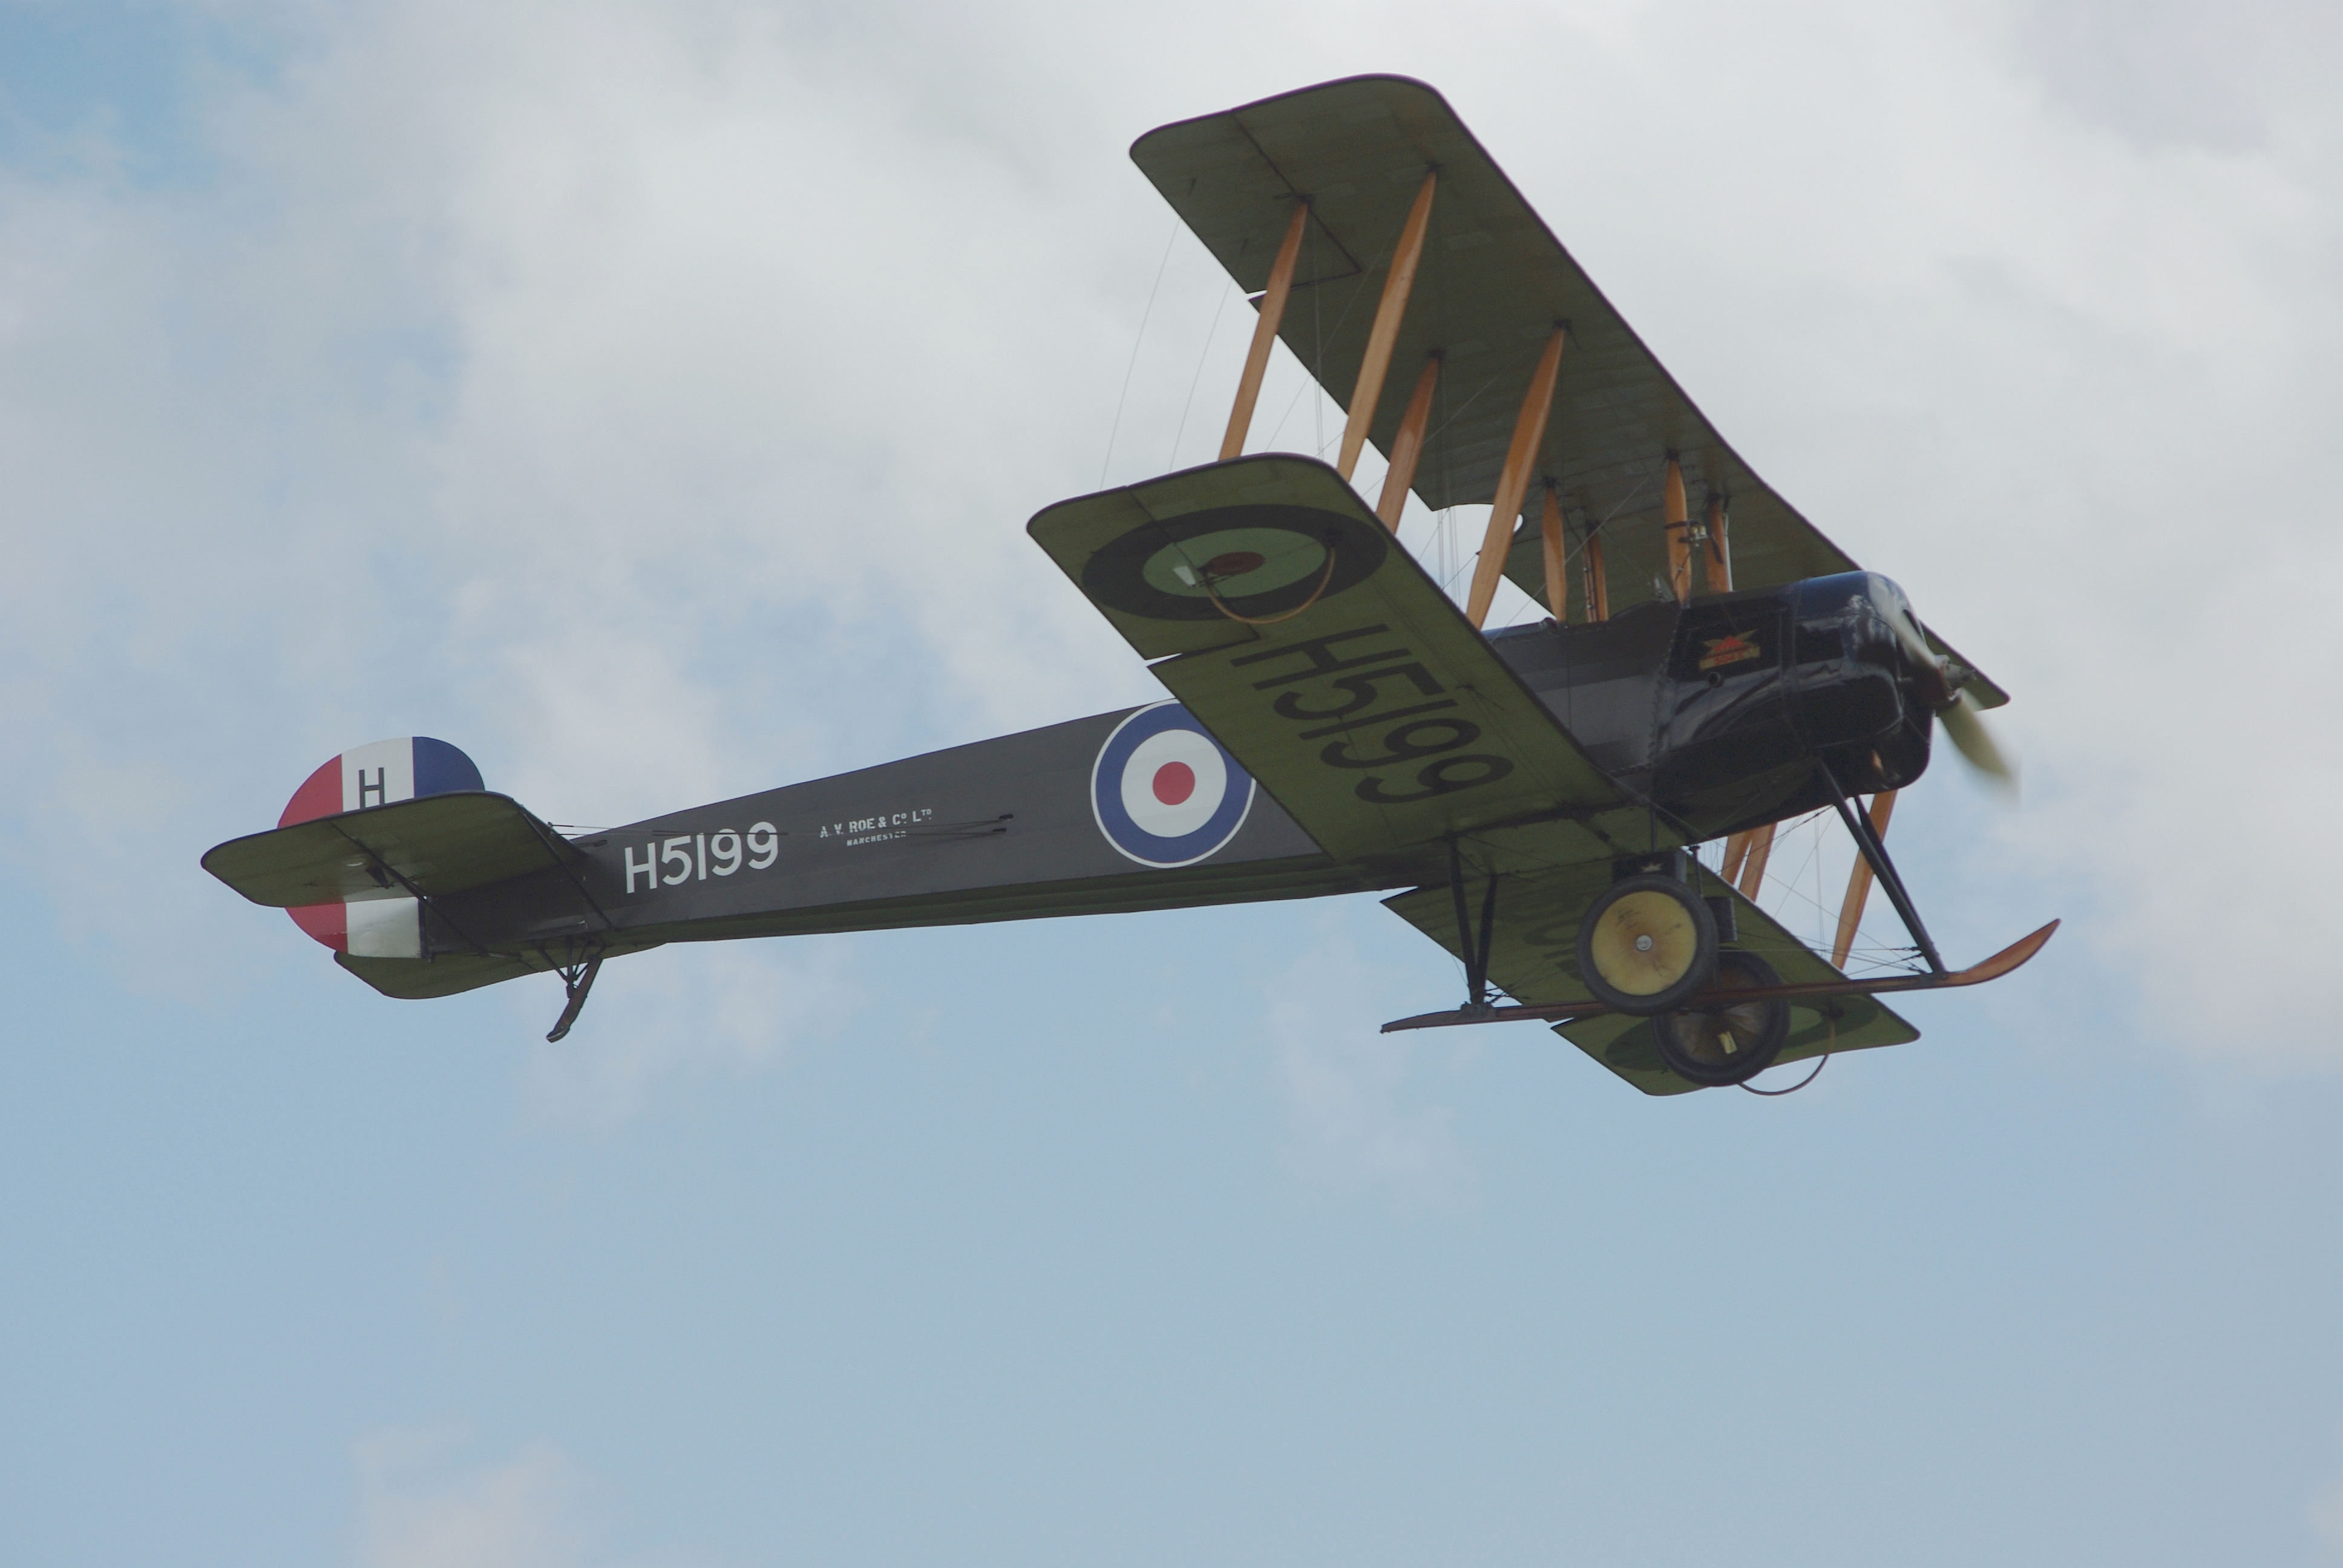 Avro 504K • First World War Training Aircraft • Restored in 2019